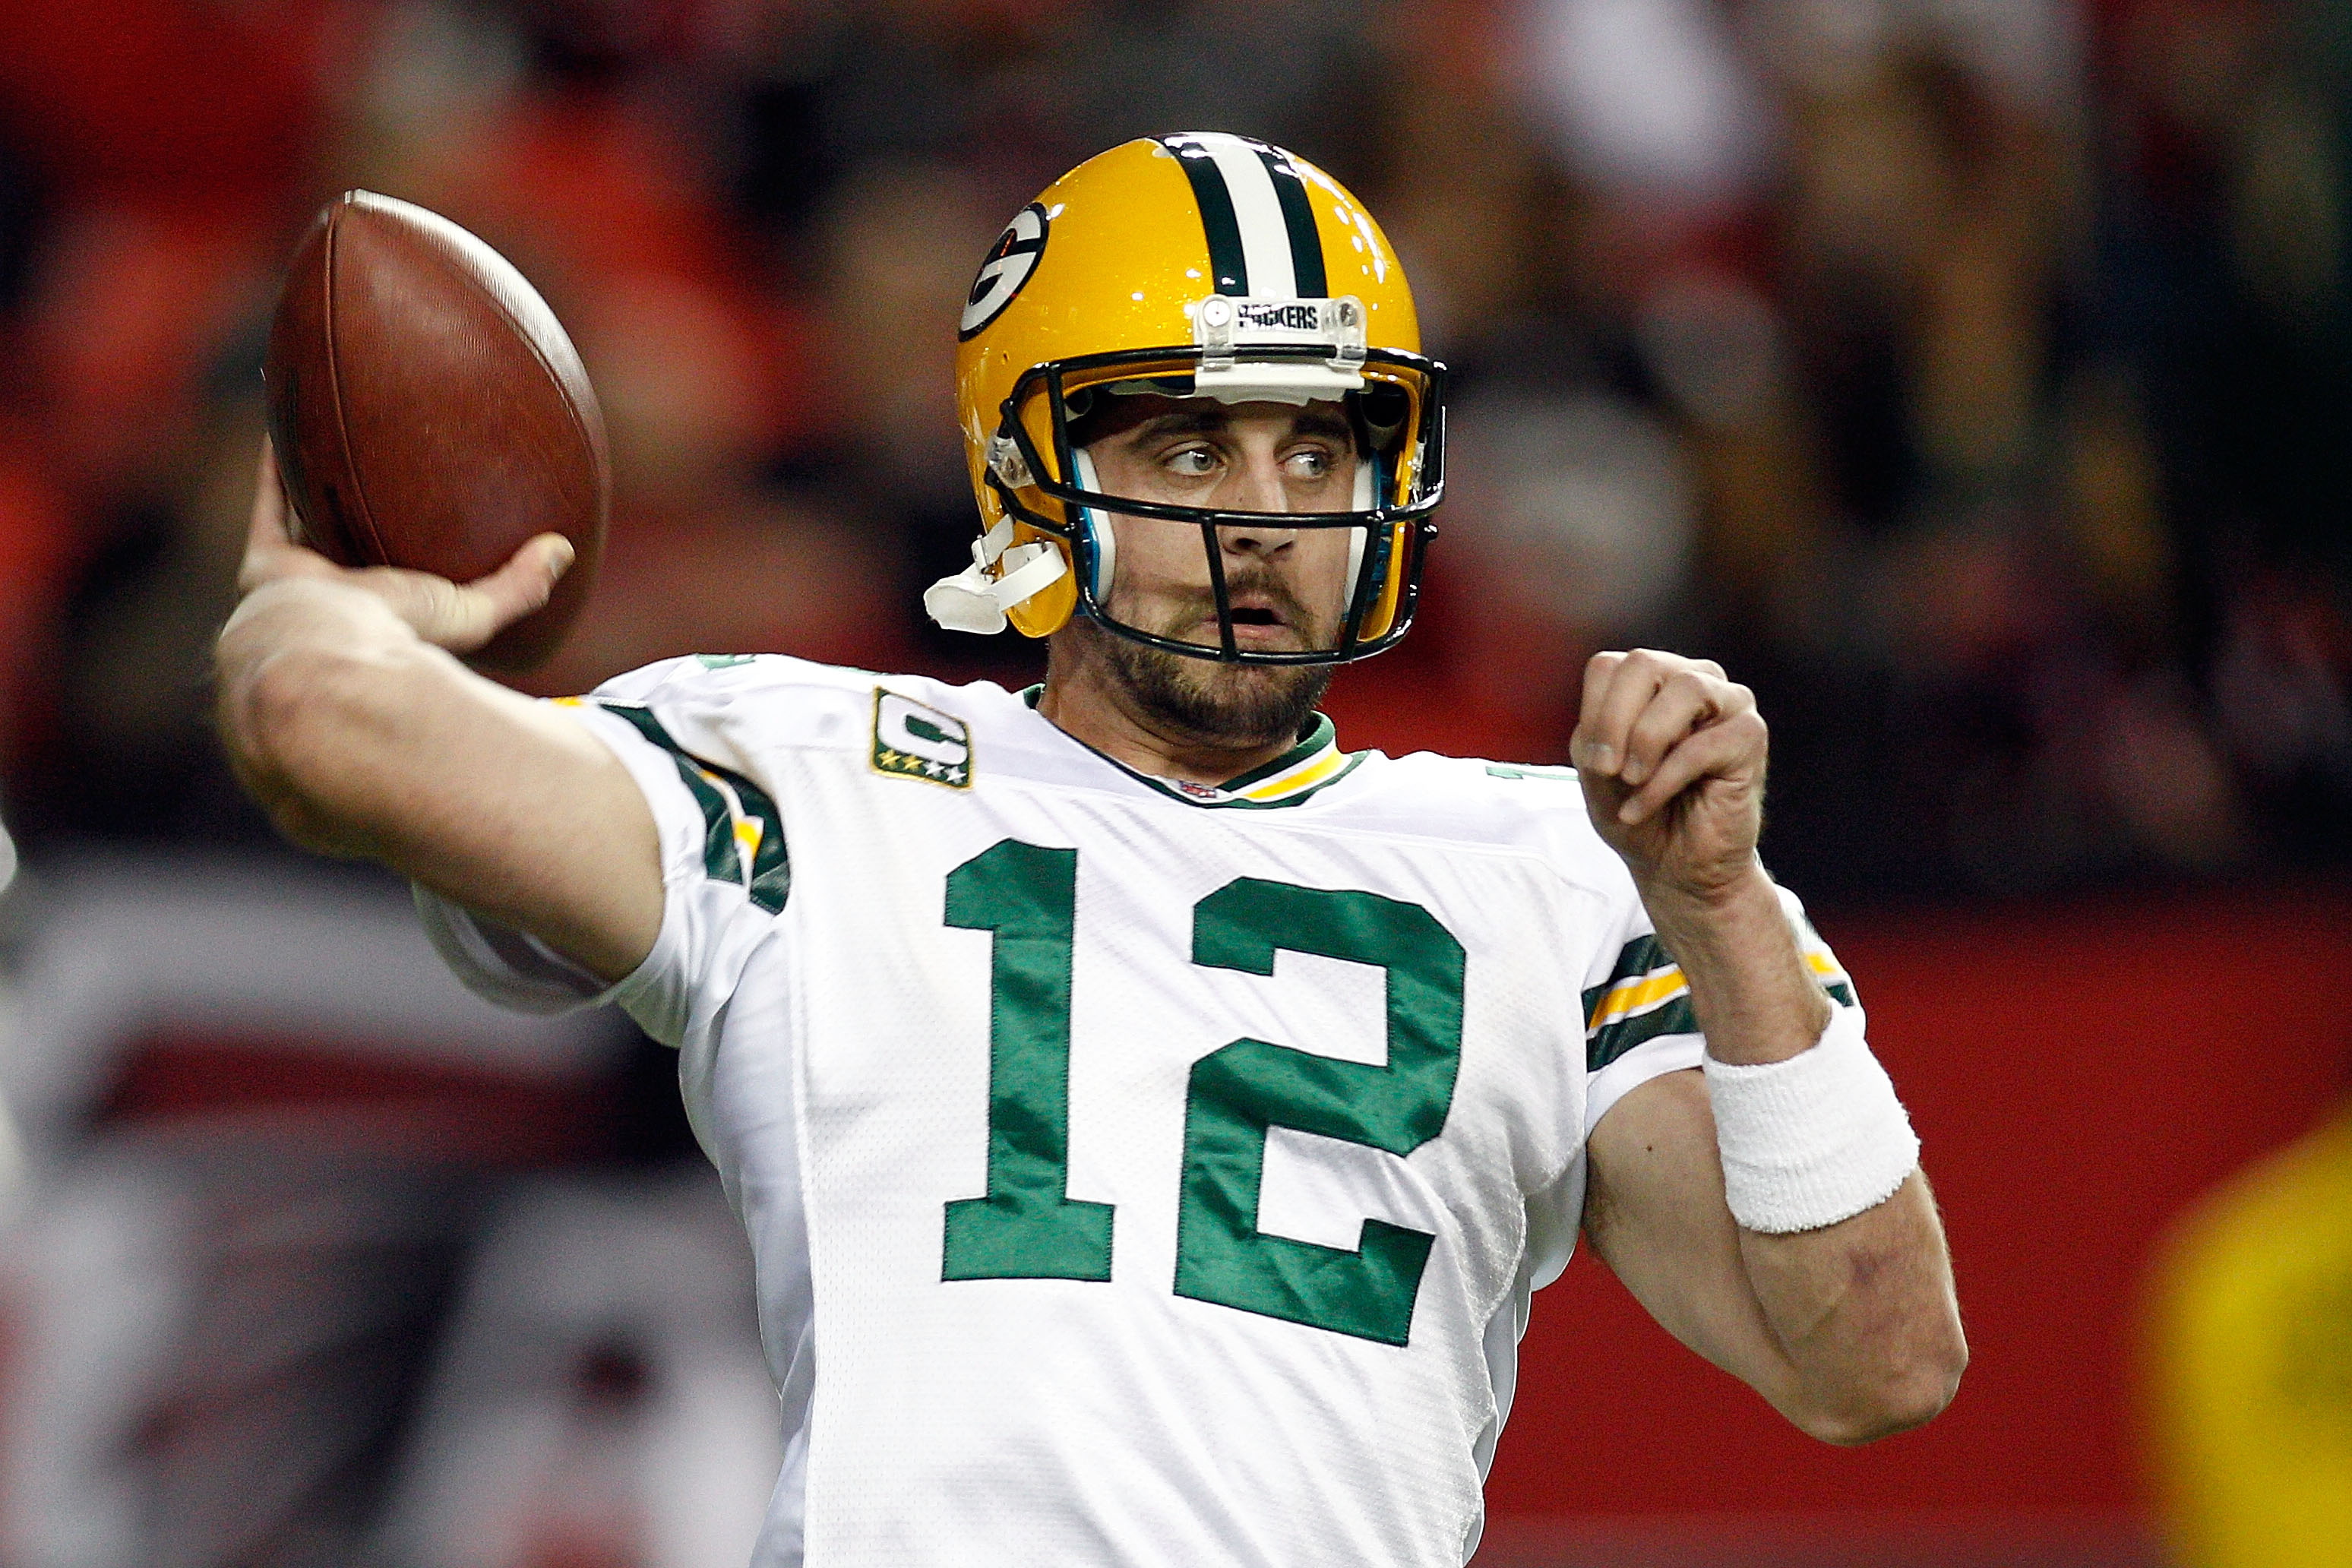 ATLANTA, GA - JANUARY 15:  Aaron Rodgers #12 of the Green Bay Packers warms up against the Atlanta Falcons during their 2011 NFC divisional playoff game at Georgia Dome on January 15, 2011 in Atlanta, Georgia.  (Photo by Chris Graythen/Getty Images)